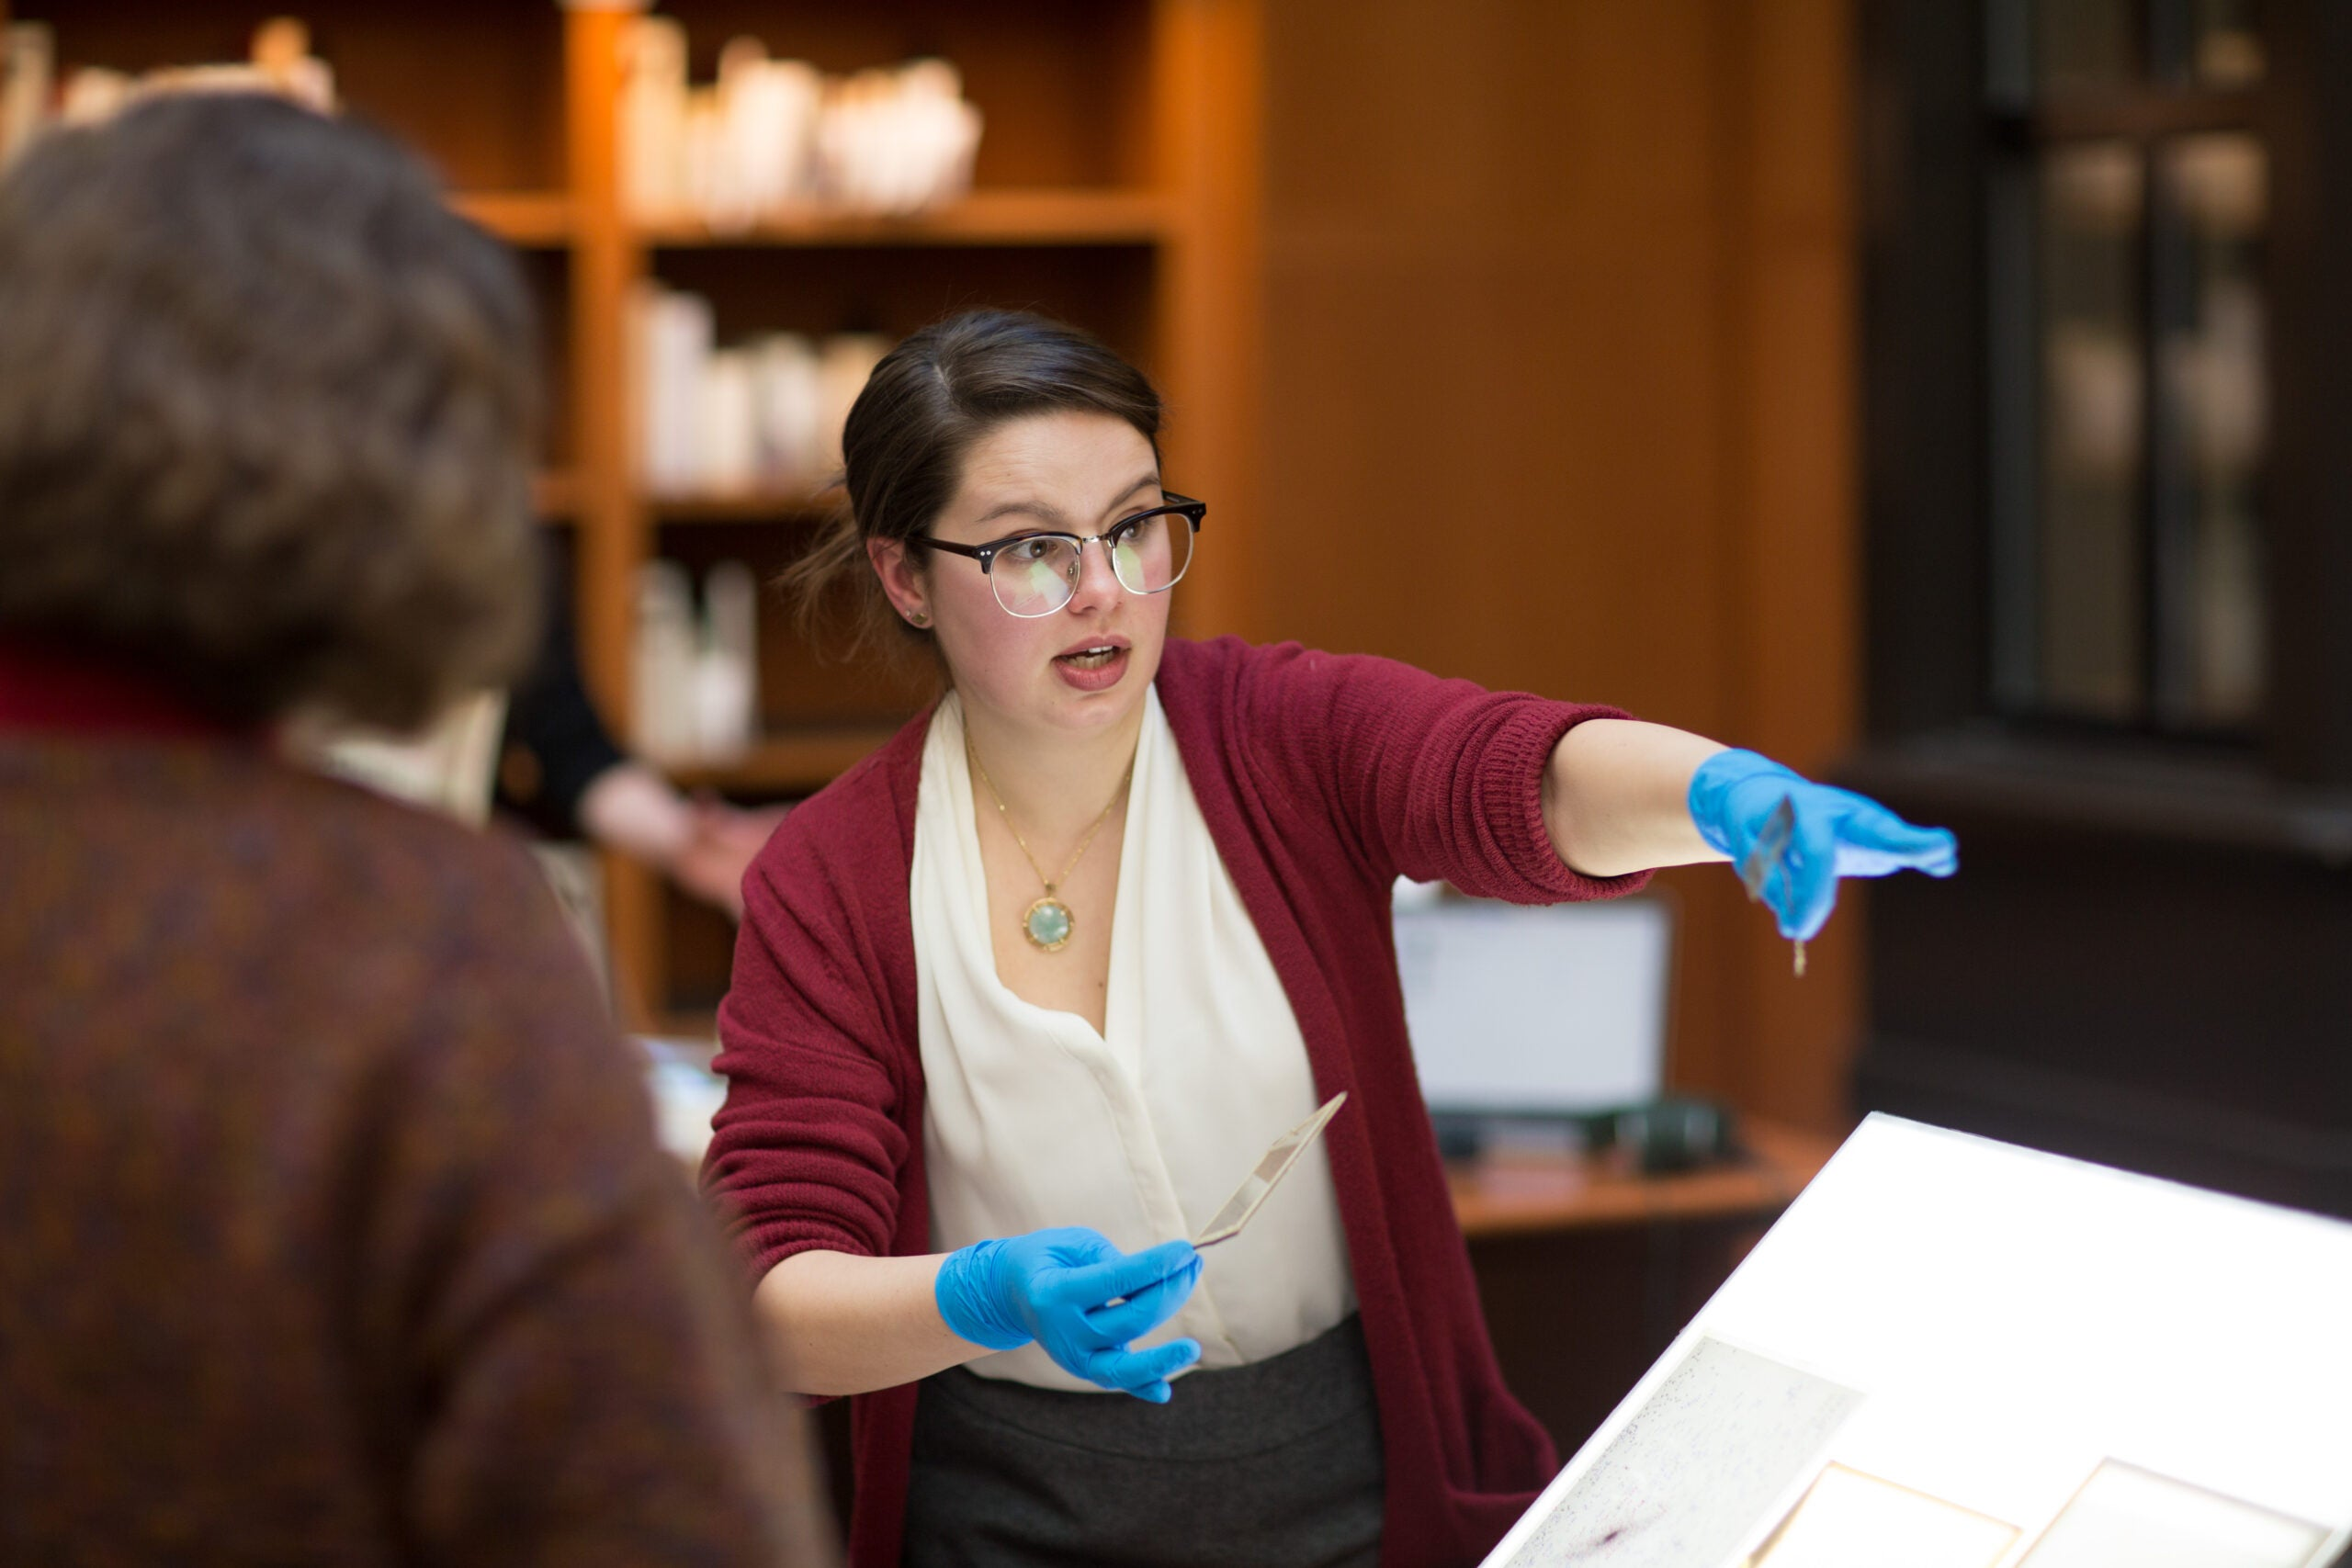 A librarian wearing gloves shows an exhibition in the library.